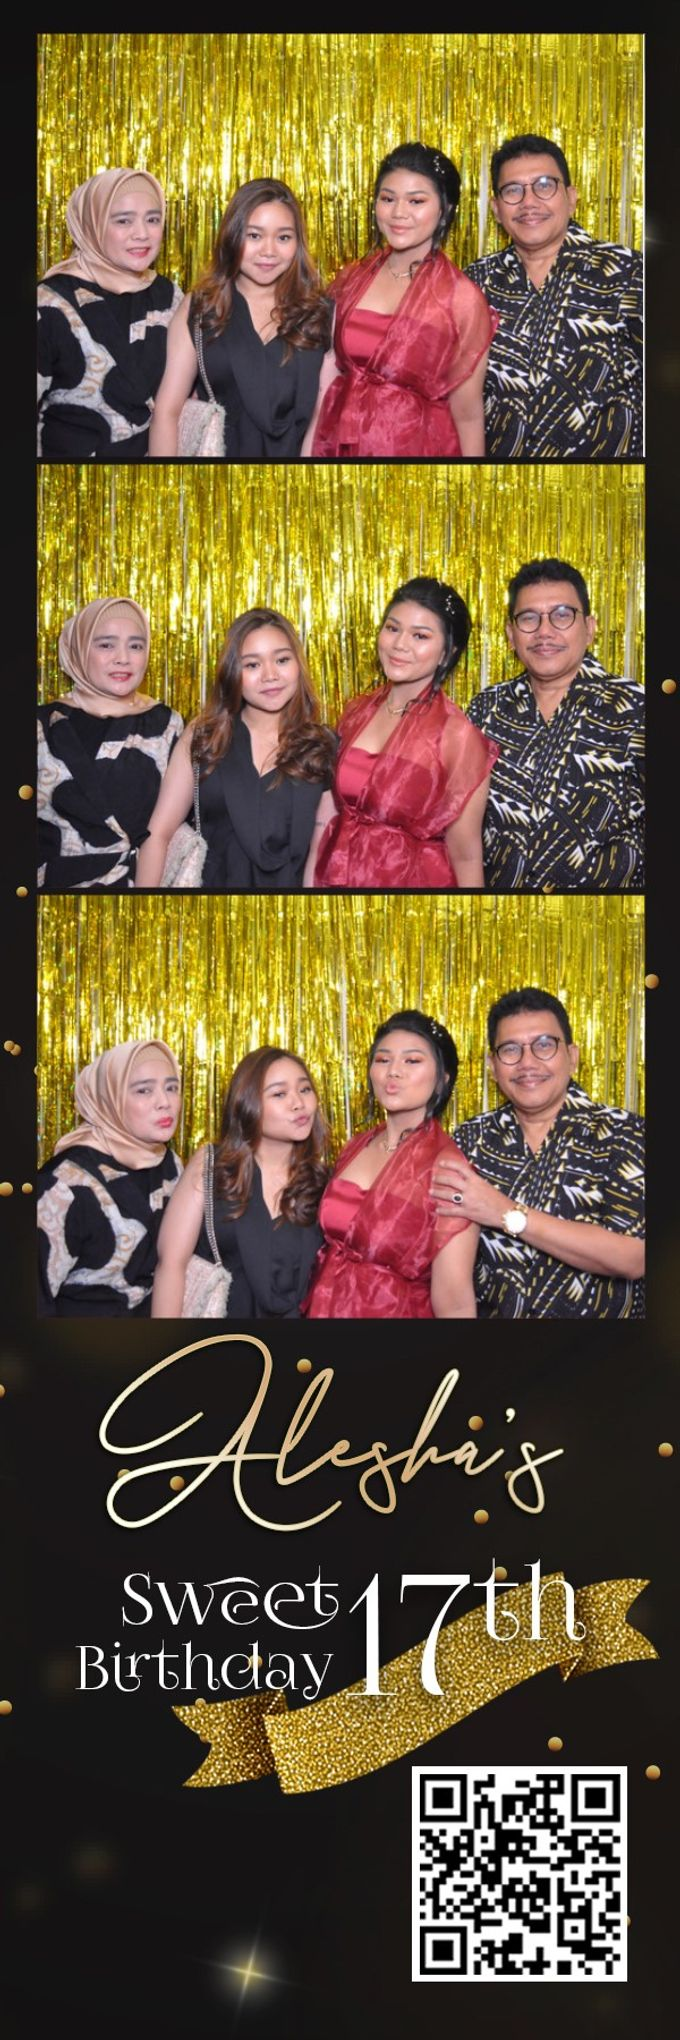 SRIPE PHOTOBOOTH by Picto Booth - 011